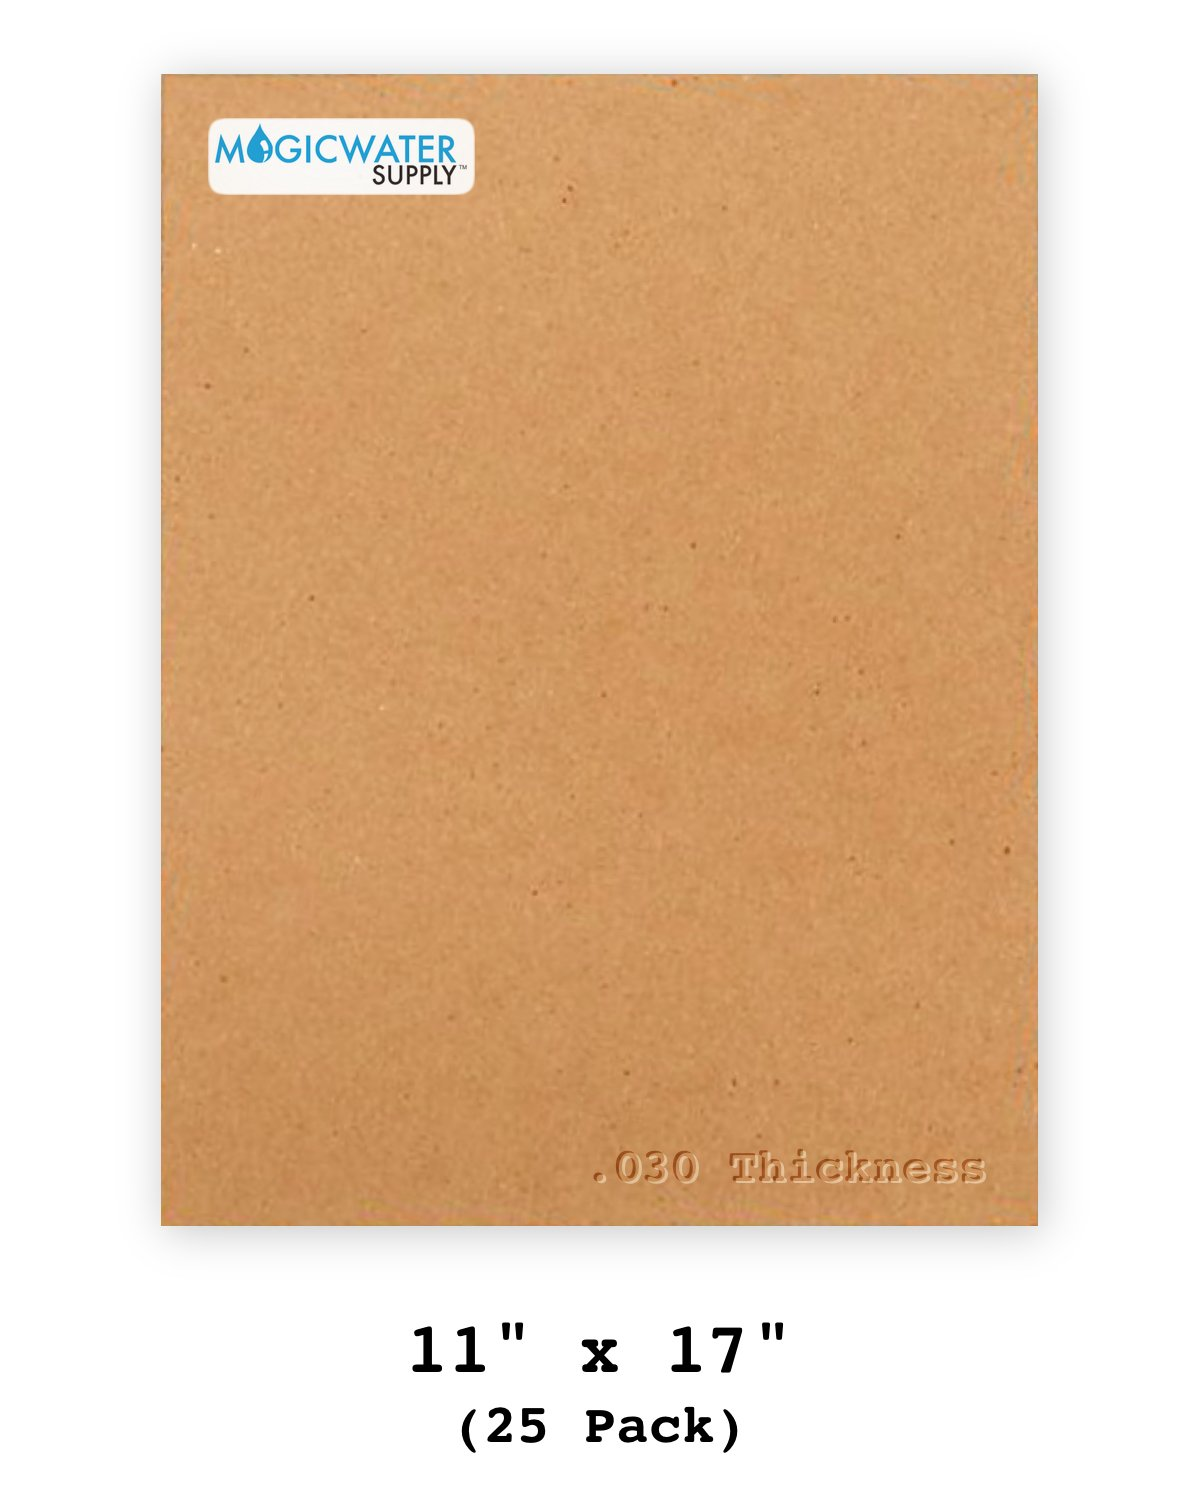 25 Chipboard Sheets 11 x 17 inch - 30pt (Point) Medium Weight Brown Kraft Cardboard for Scrapbooking & Picture Frame Backing (.030 Caliper Thick) Paper Board | MagicWater Supply by MagicWater Supply (Image #1)